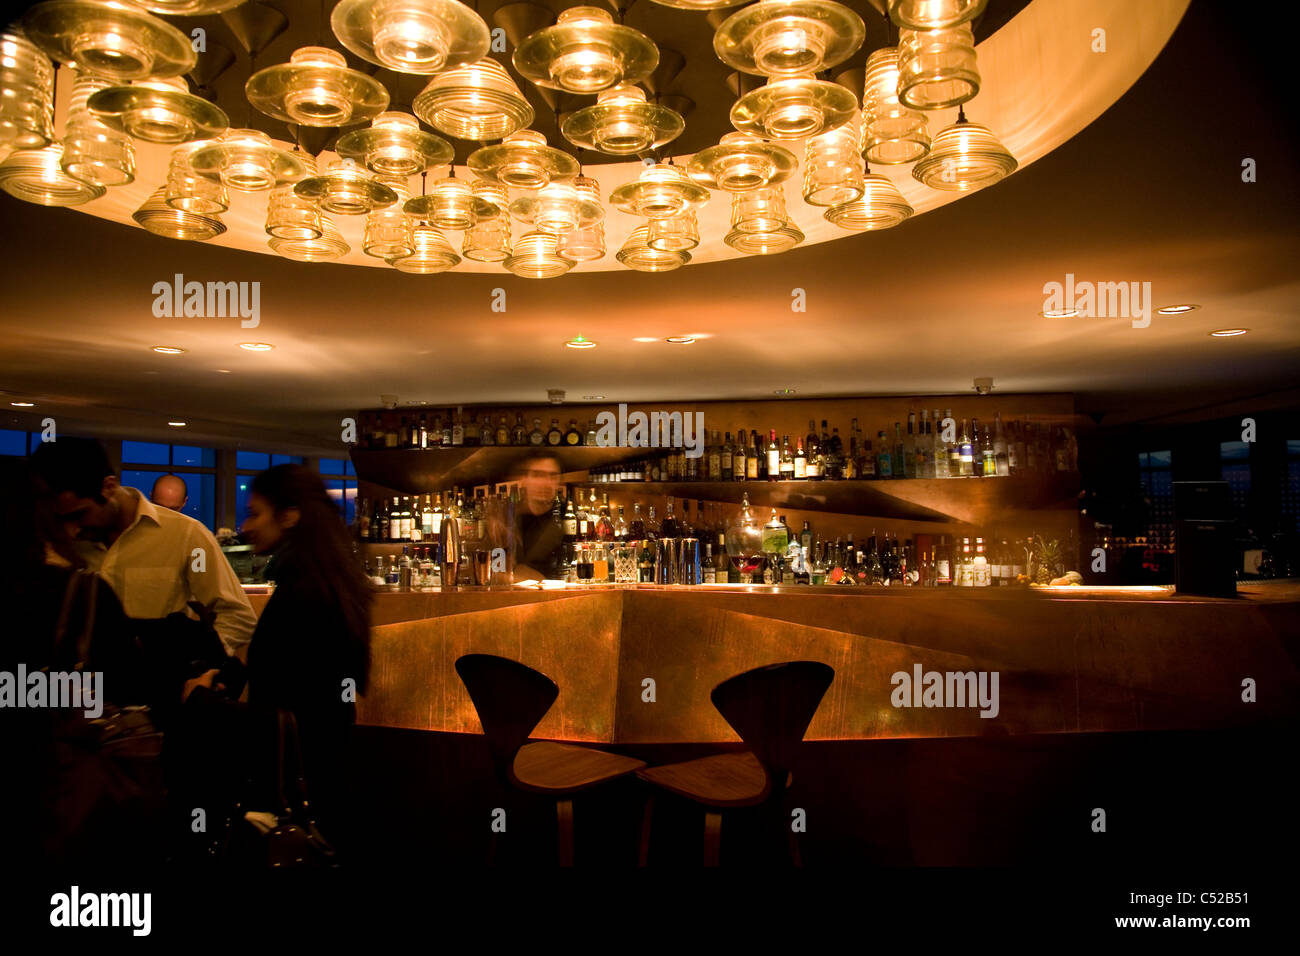 Paramount Bar and Restaurant i in London - Stock Image